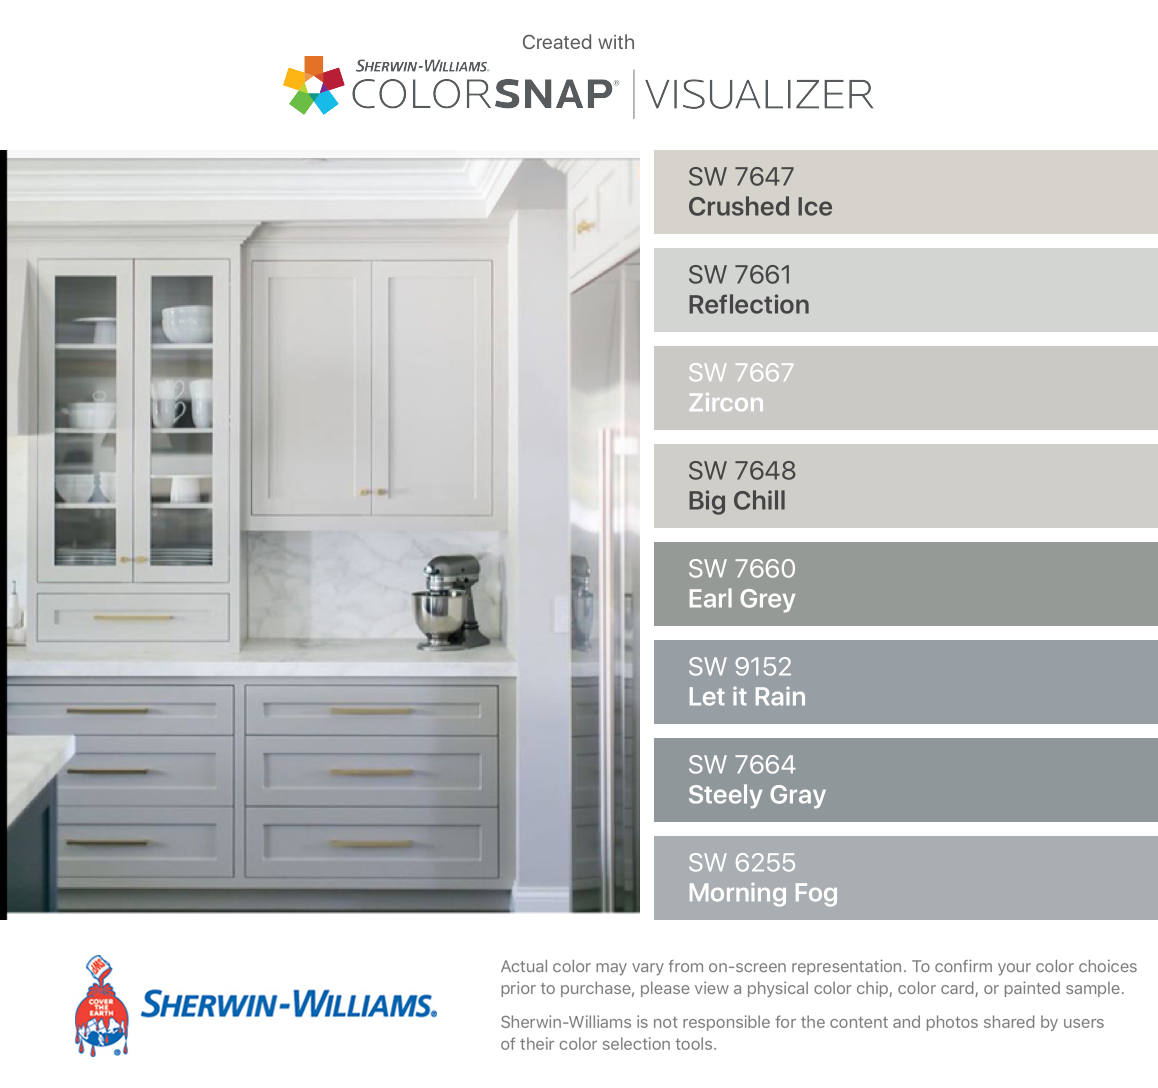 I Found These Colors With Colorsnap Visualizer For Iphone By Sherwin William Sherwin Williams Colors Sherwin Williams Steely Gray Morning Fog Sherwin Williams